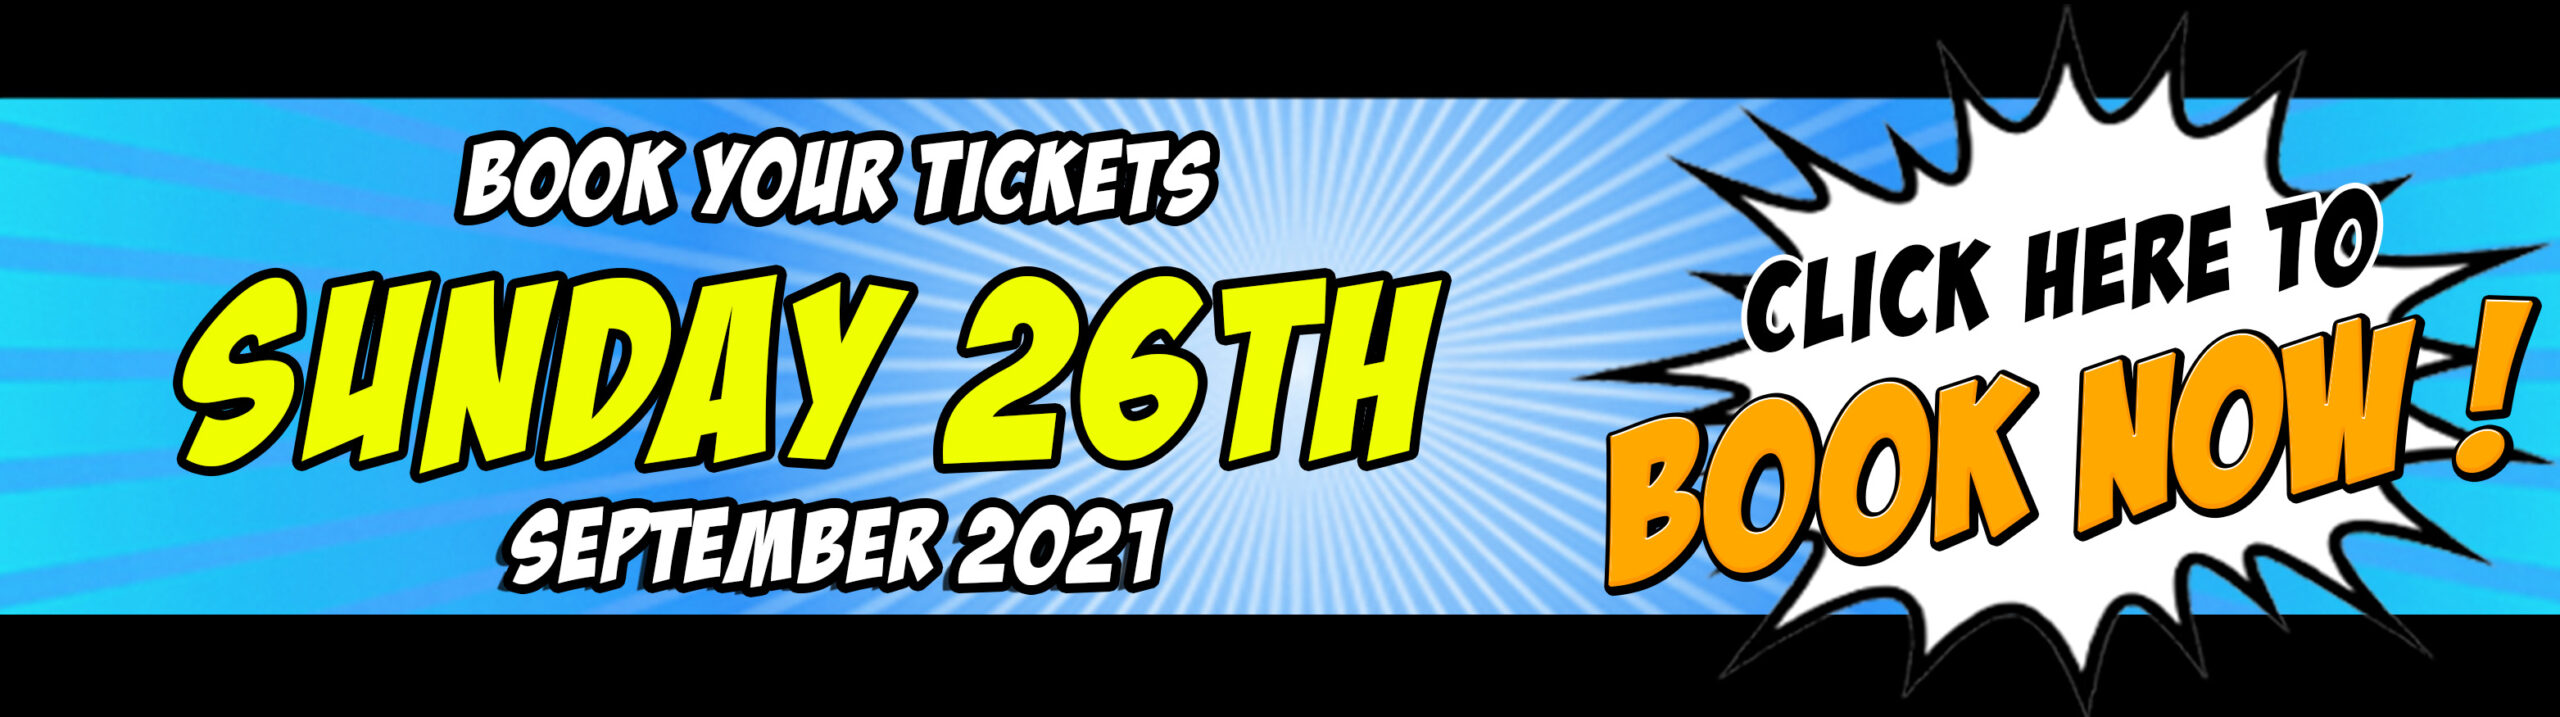 Buy your NORCON Sunday 26th September 2021 tickets